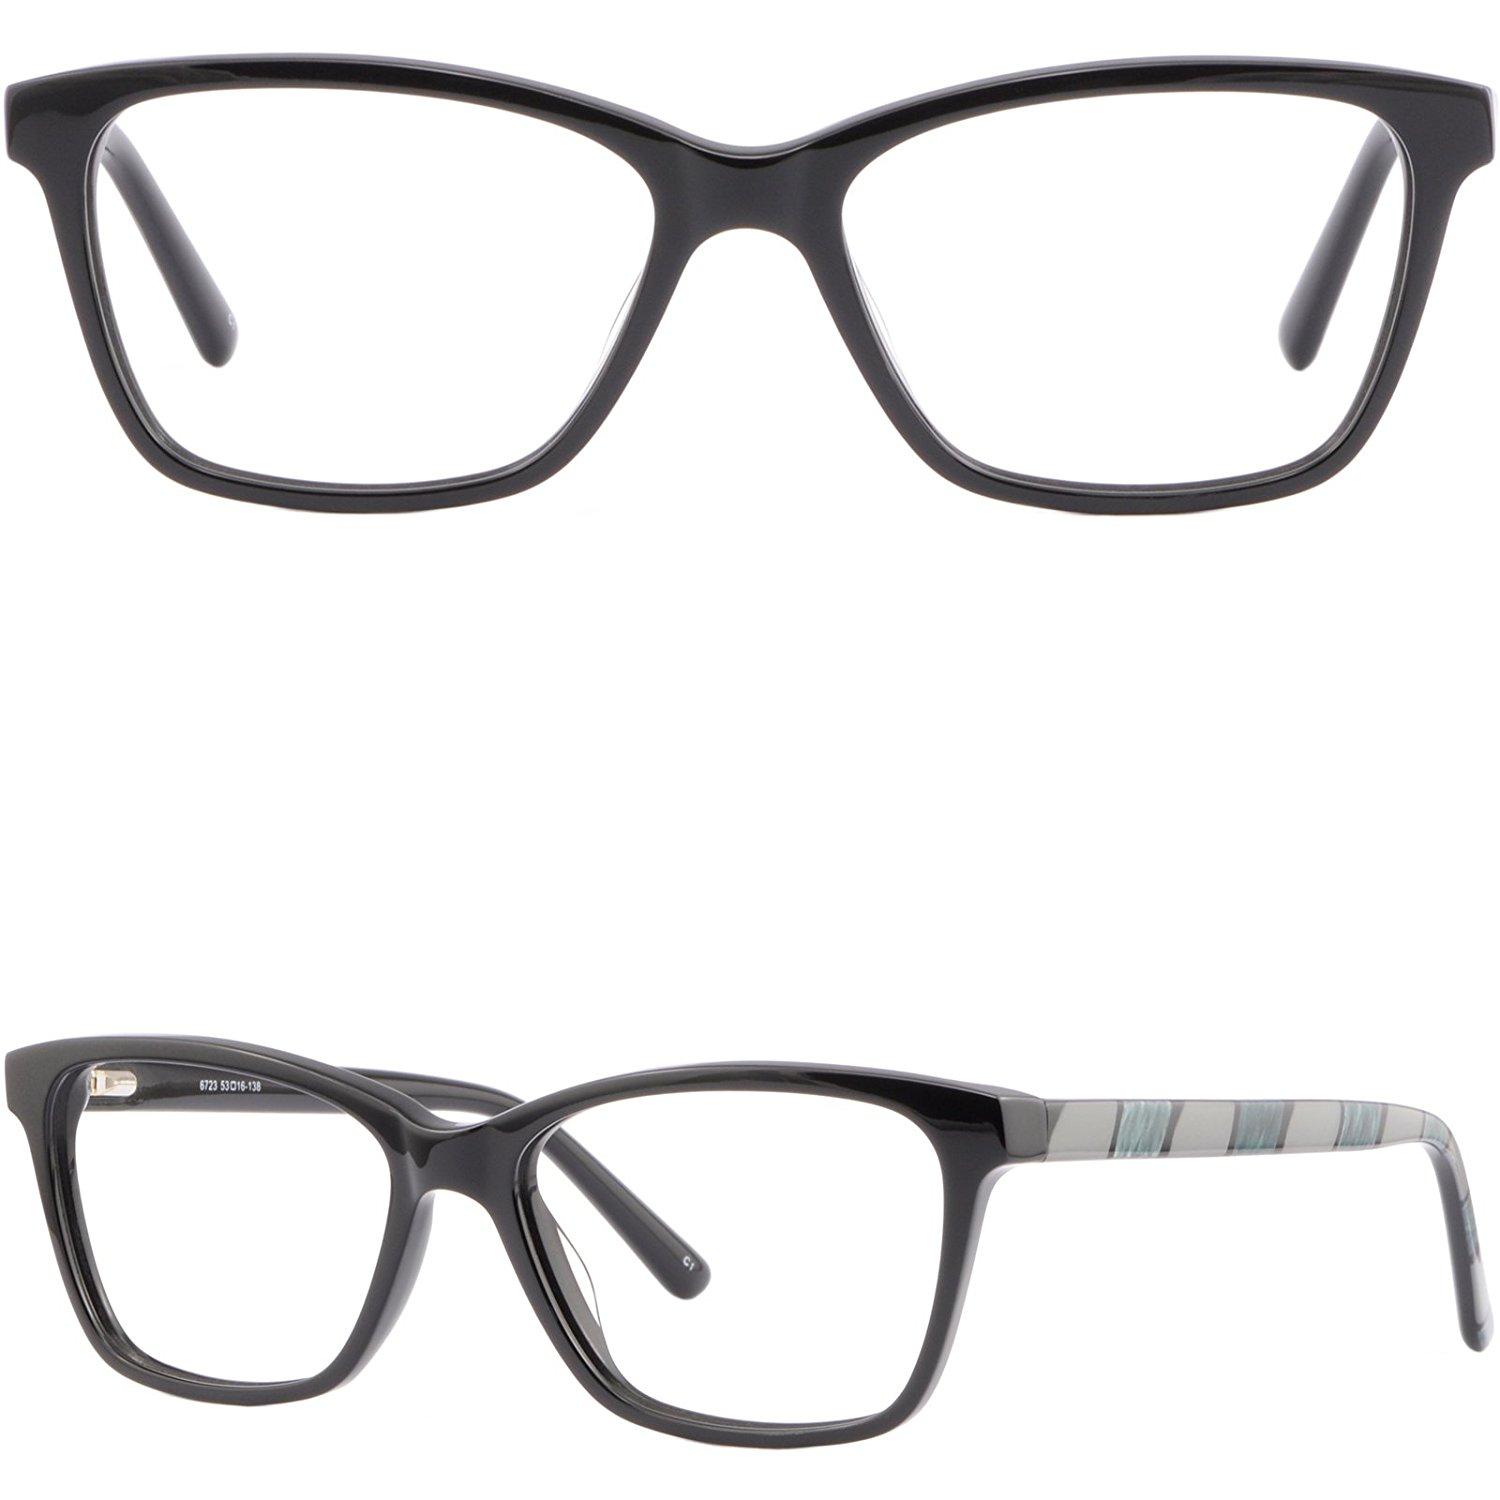 Bright Black Retro Mens Womens Clear Lens Eyeglasses Glasses Frames Anti-radiation Eyewear xz